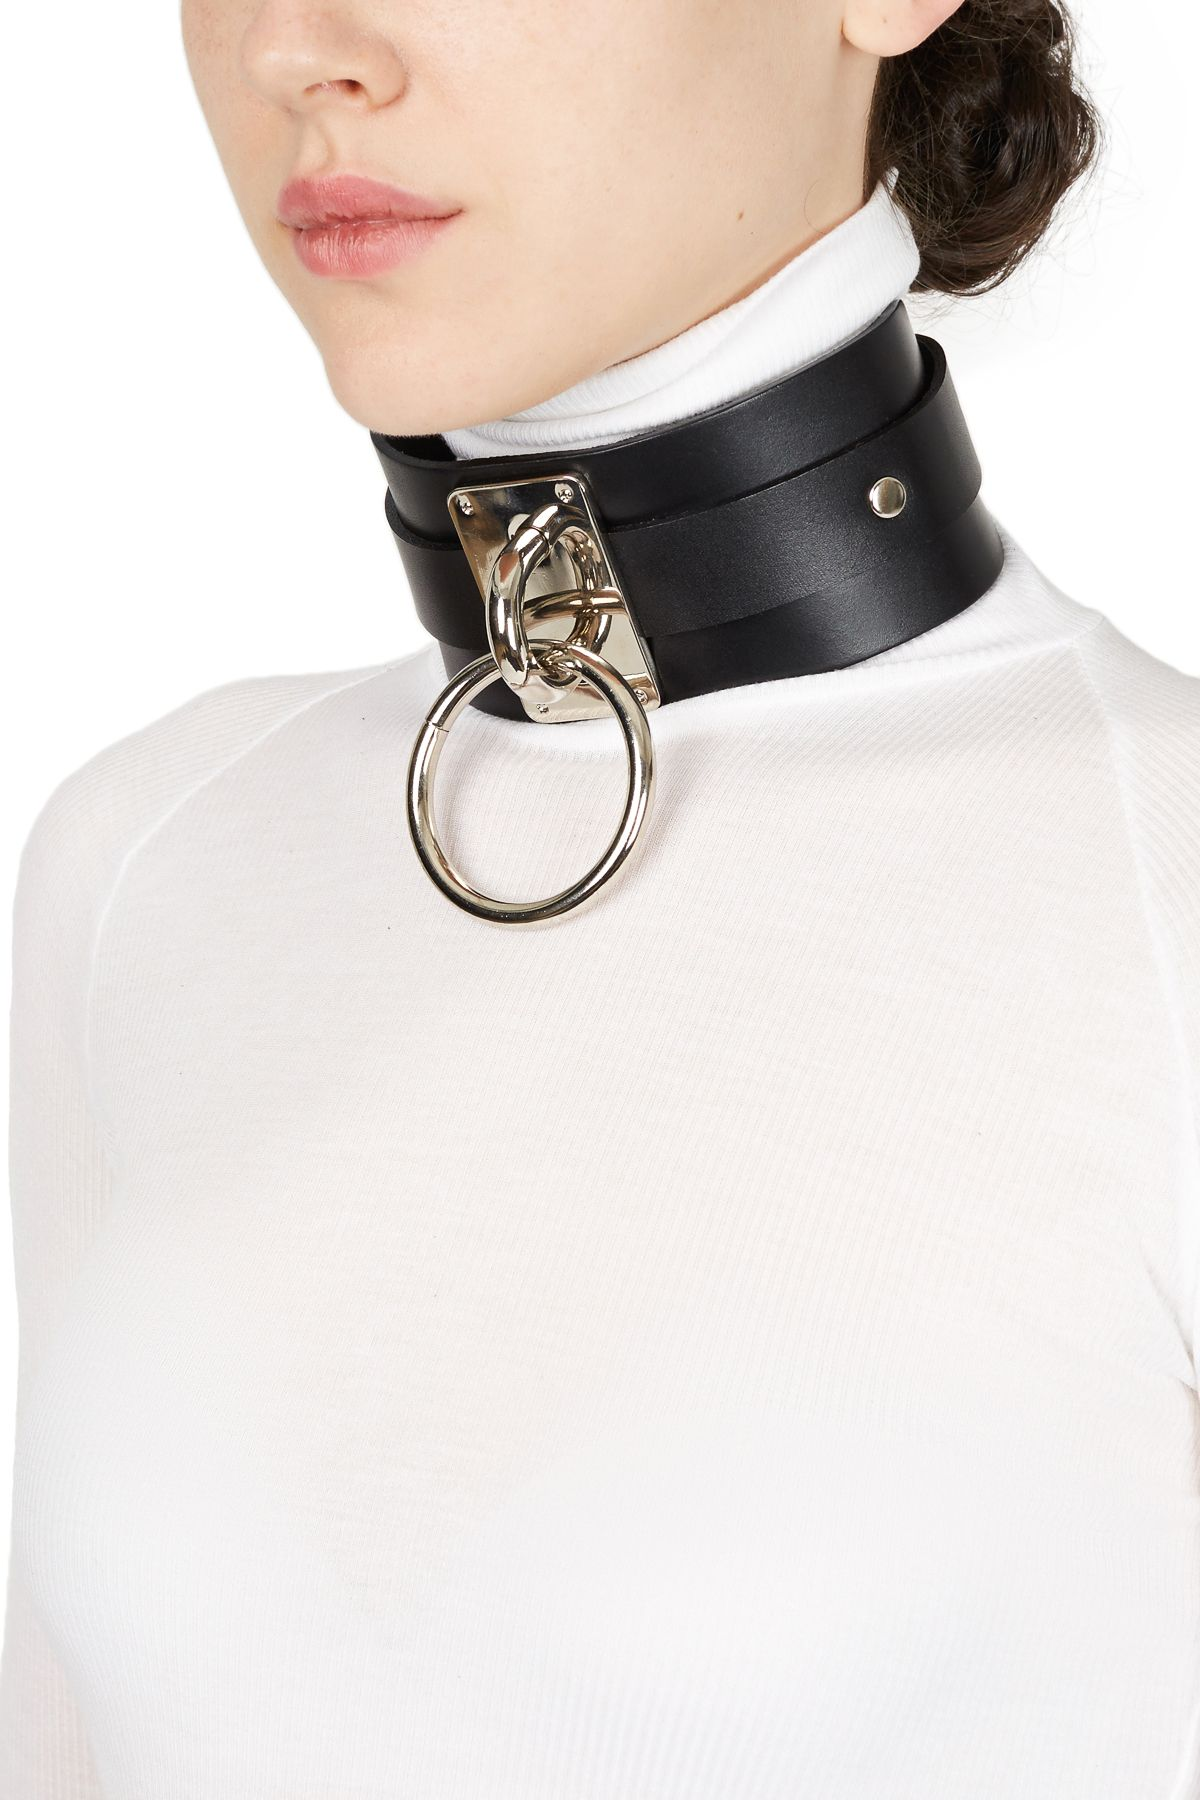 :Studded oversized choker collar:D-ring with an oversized ring:100% leather :Made in NYC